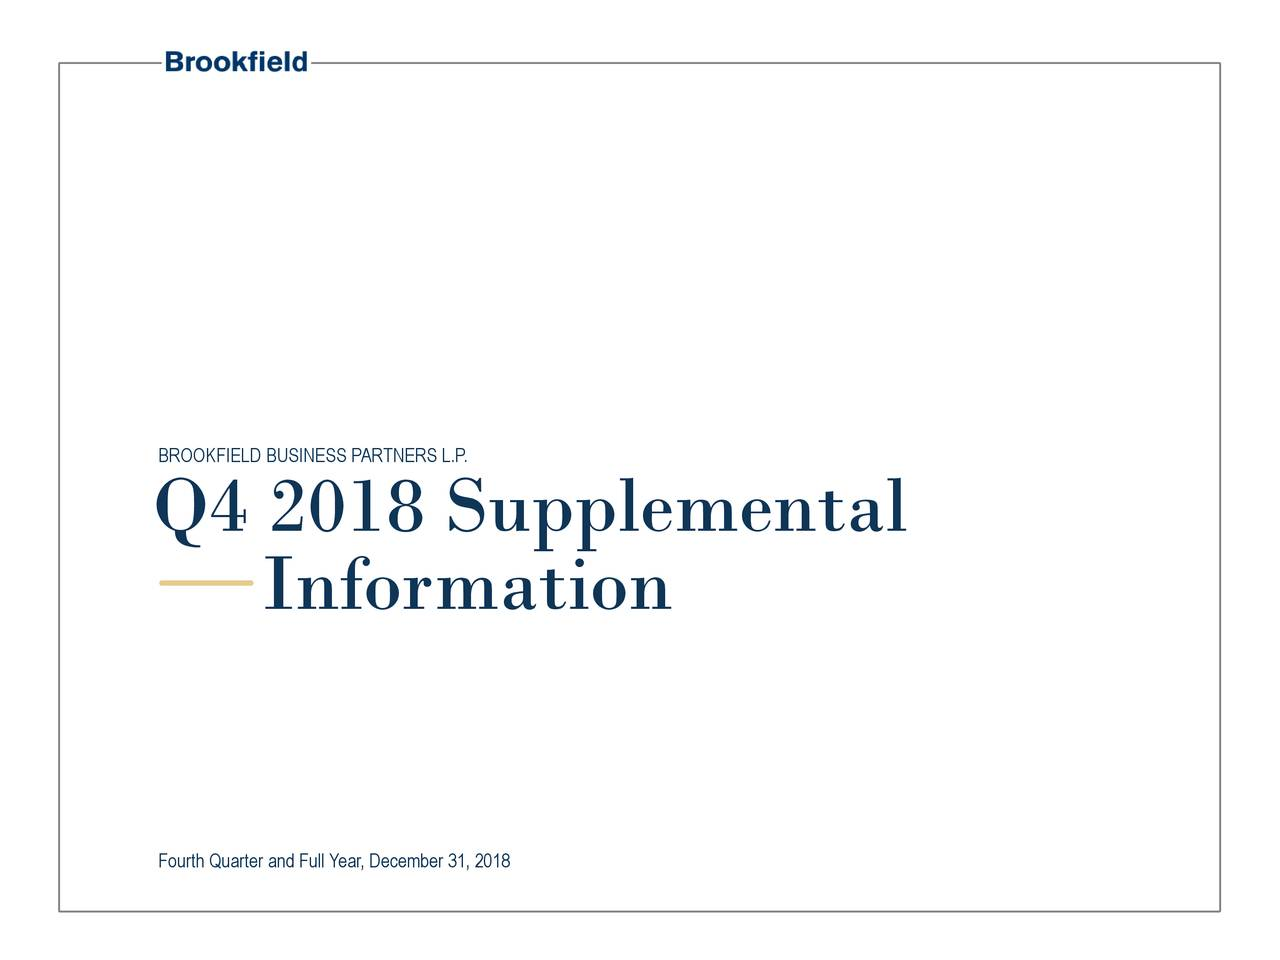 Q4 2018 Supplemental Information Fourth Quarter and Full Year, December 31, 2018